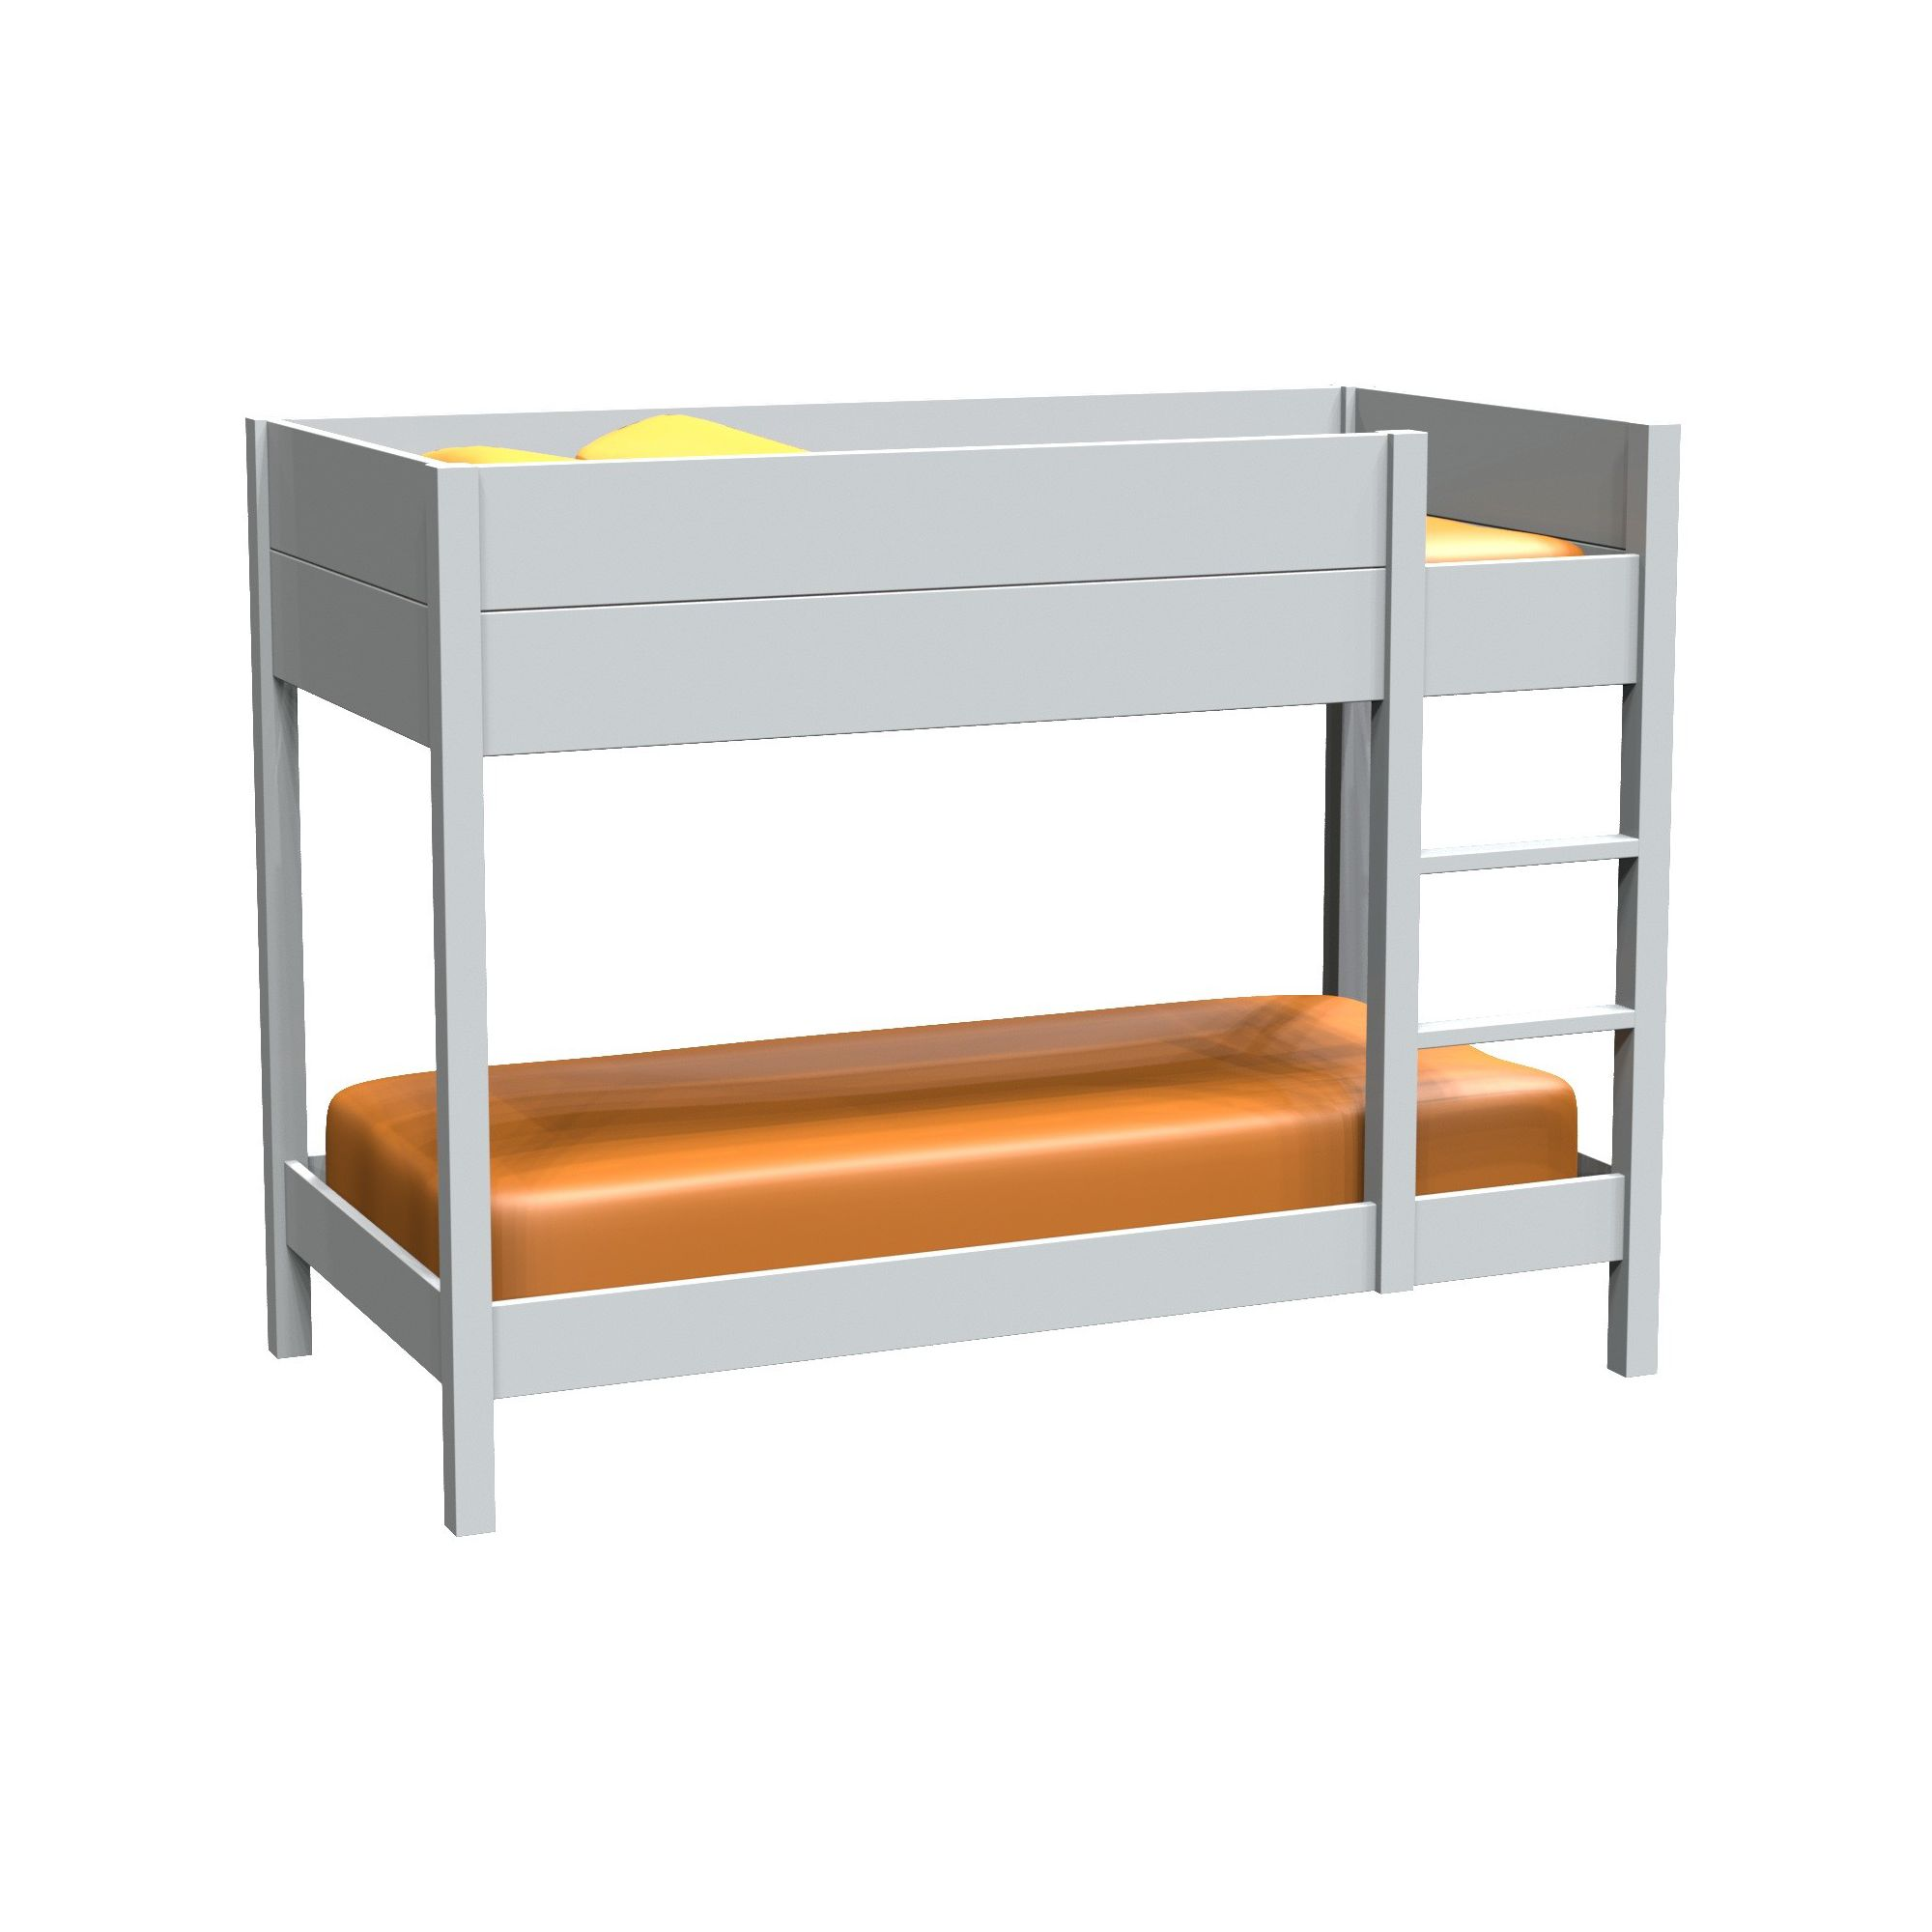 Altruna Moove Bunkbed - White at Tesco Direct